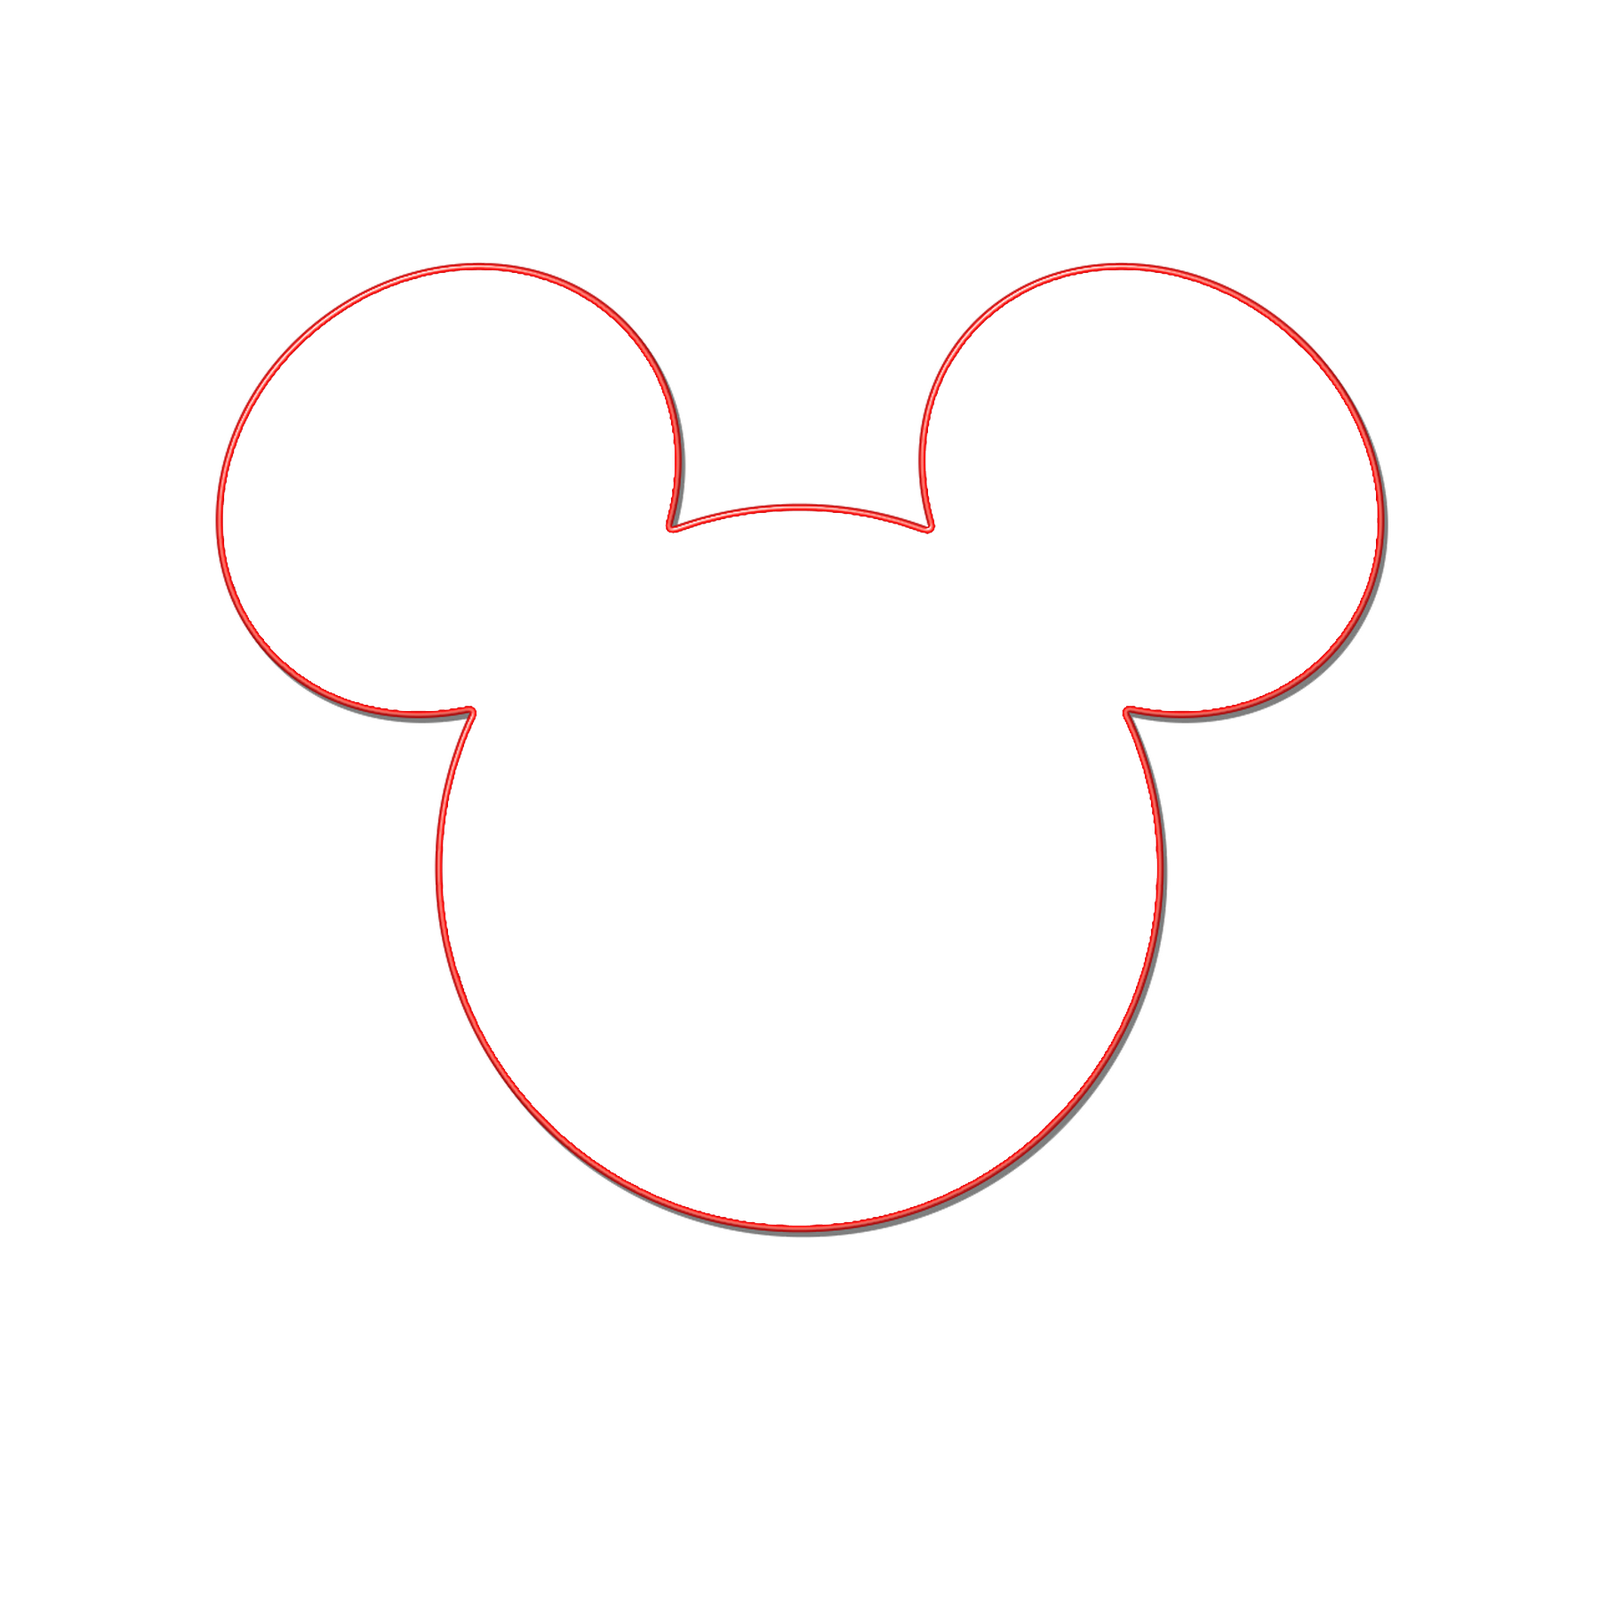 Mickey Mouse Ears Clip Art - ClipArt Bes-Mickey Mouse Ears Clip Art - ClipArt Best-3